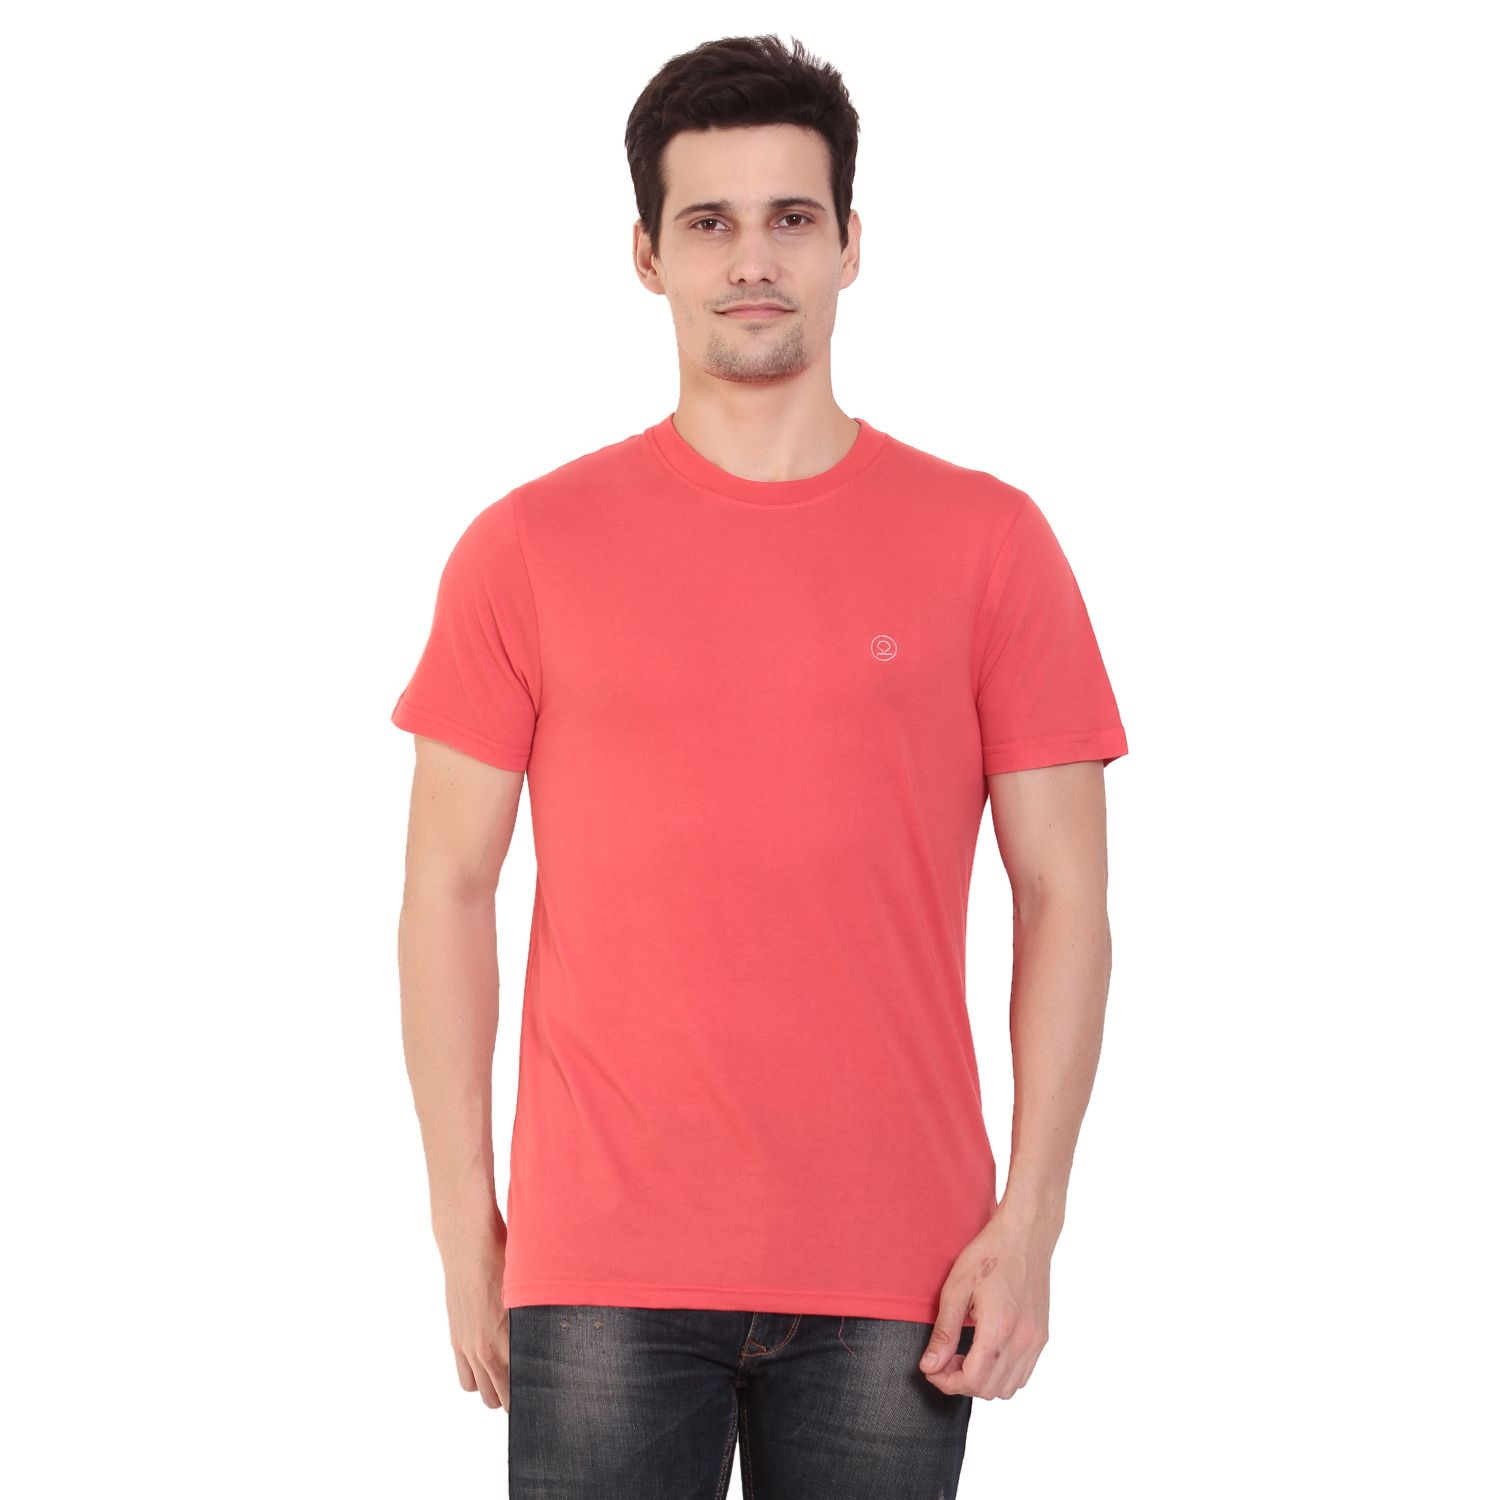 d8a727e7 Half Sleeves Solid Plain Round Neck Peach T-Shirt. Use Coupon CHK20 and get  20% #Discount on #OnlineShopping #RoundNeckTShirt #MenTshirts #TShirtsOnline